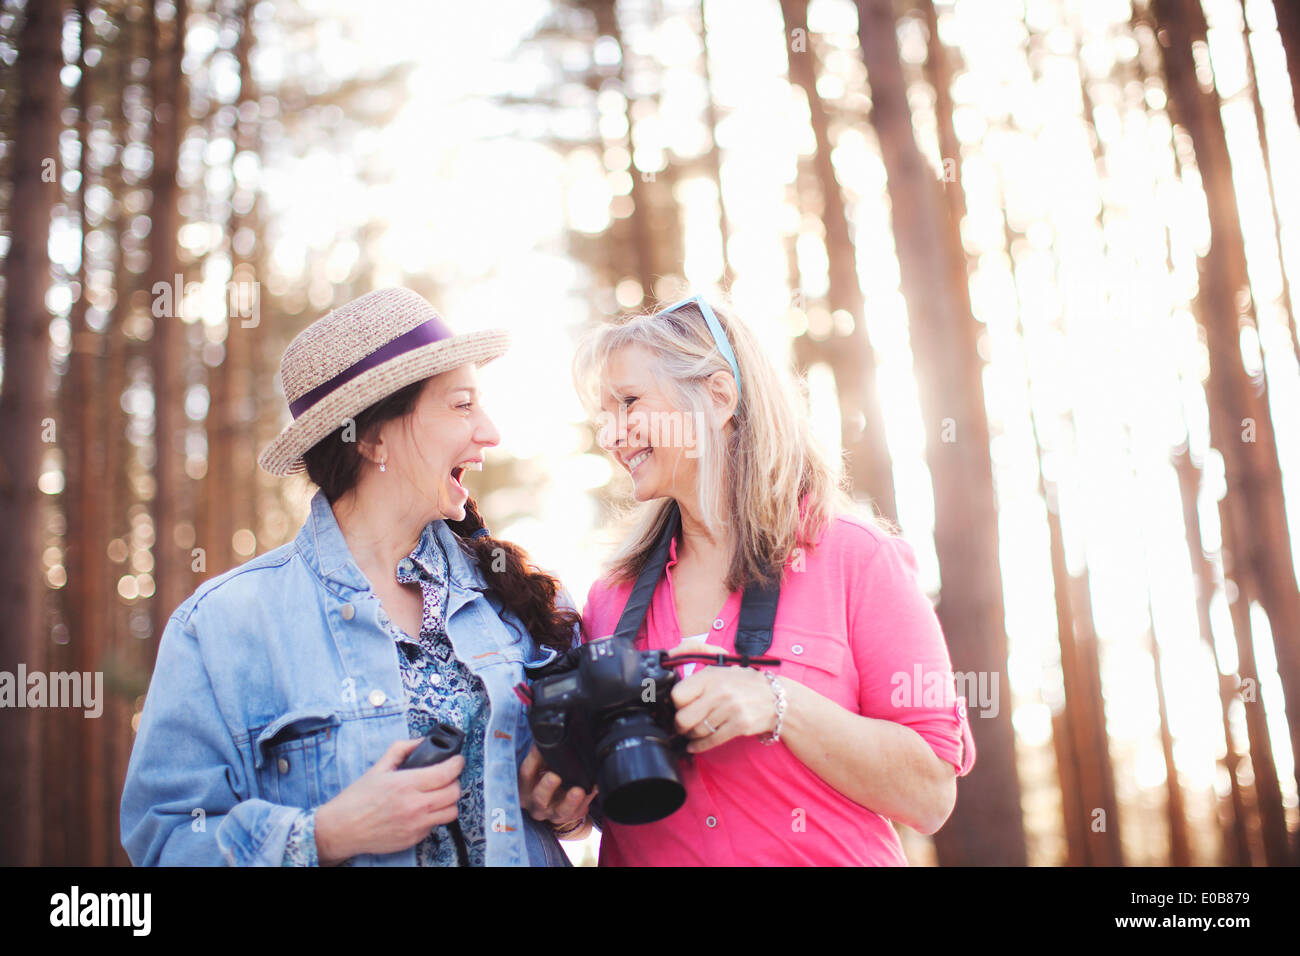 Two mature female bird watchers in forest - Stock Image